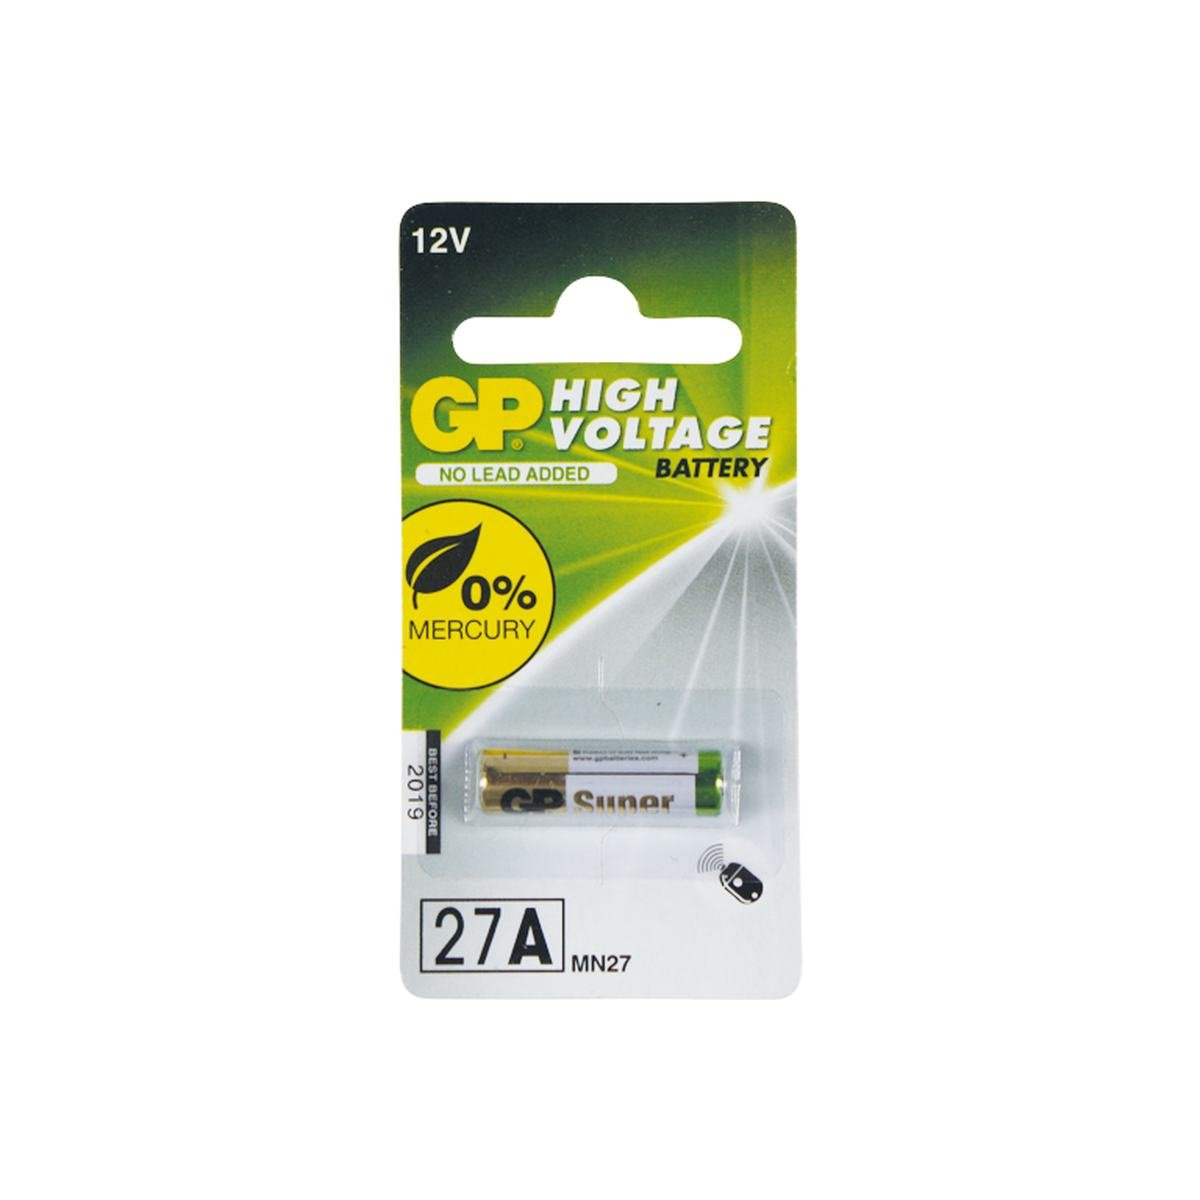 Batteri 27A 12V alkaline 1 stk pack - GP Batteries